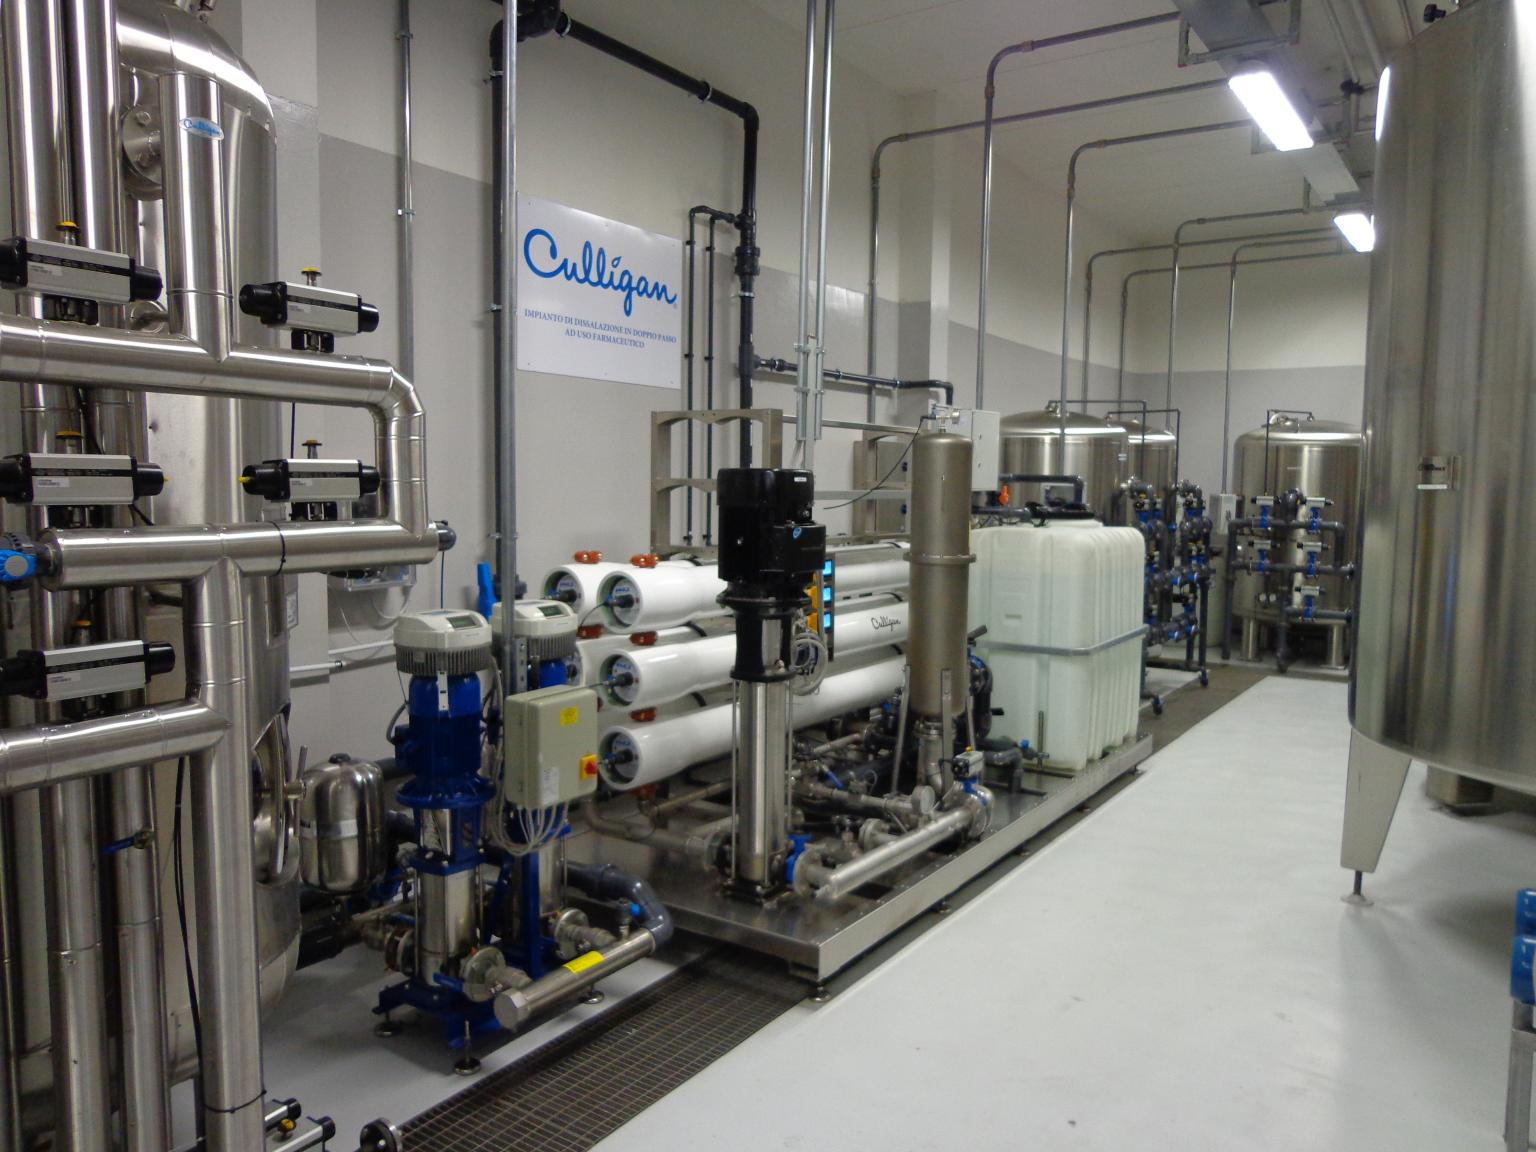 A reverse osmosis unit is one of the technologies in a bespoke solution for improving water quality for CHP